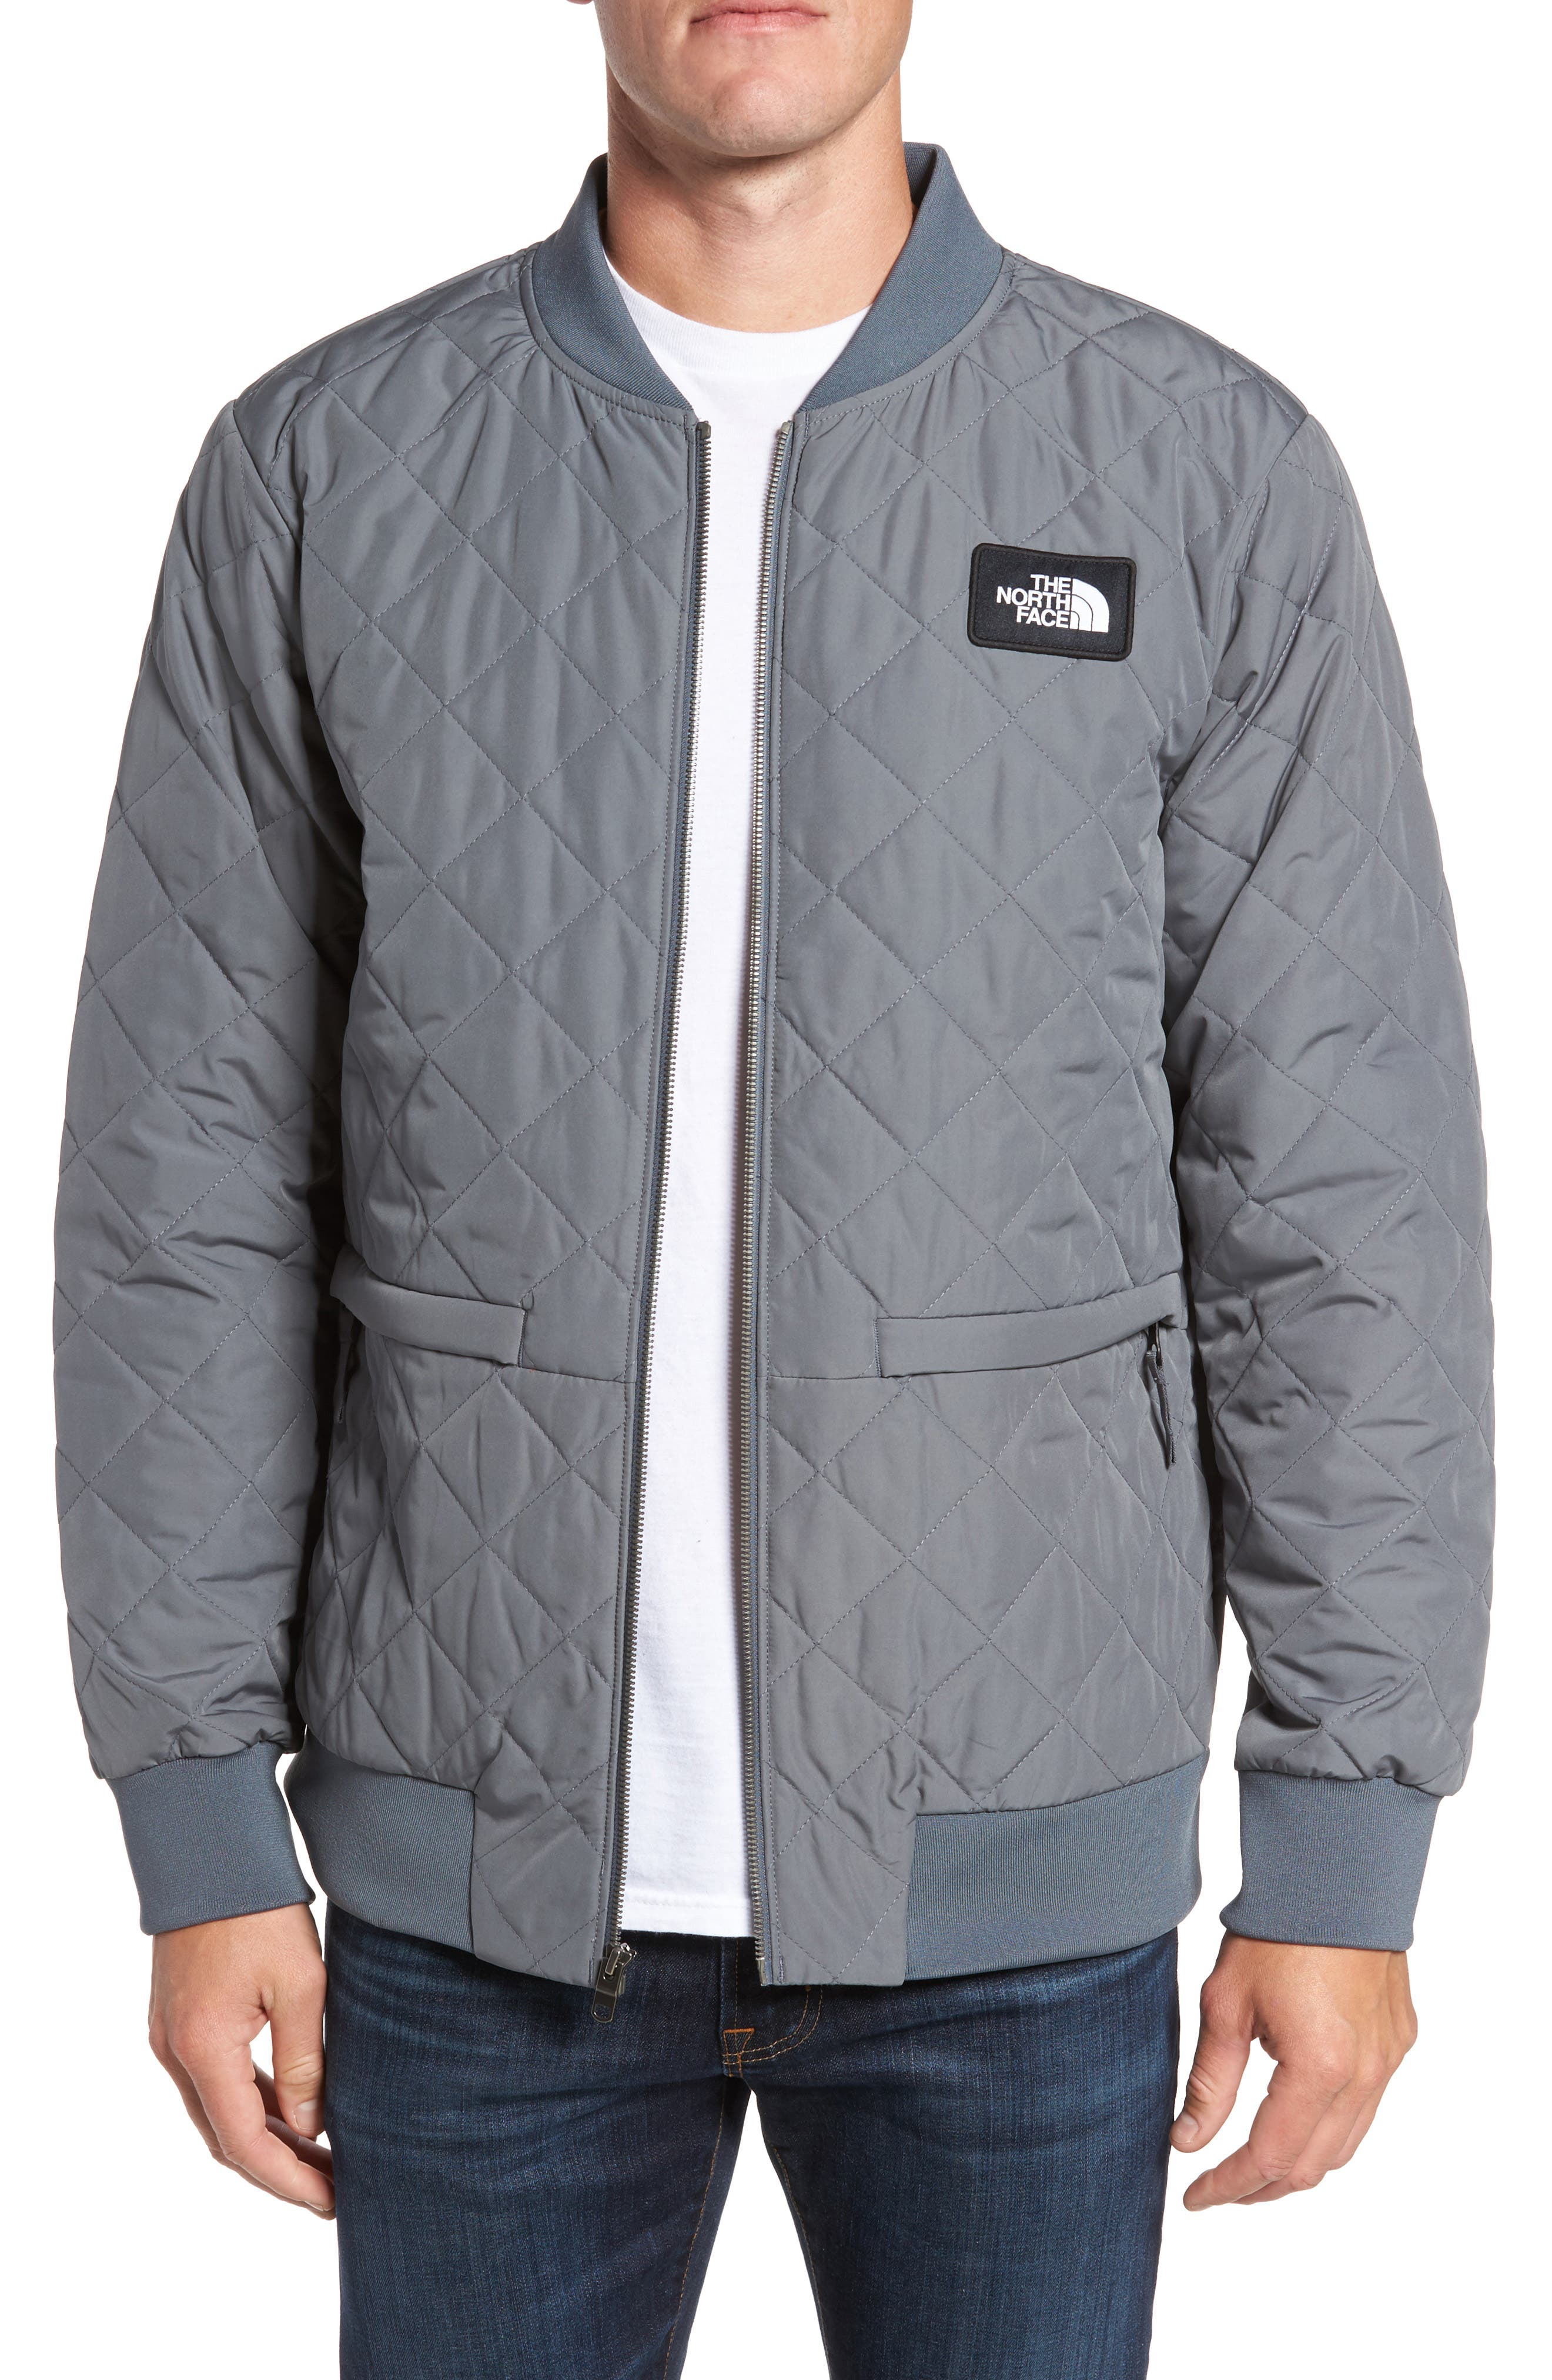 Alternate Image 1 Selected - The North Face Distributor Quilted Bomber Jacket